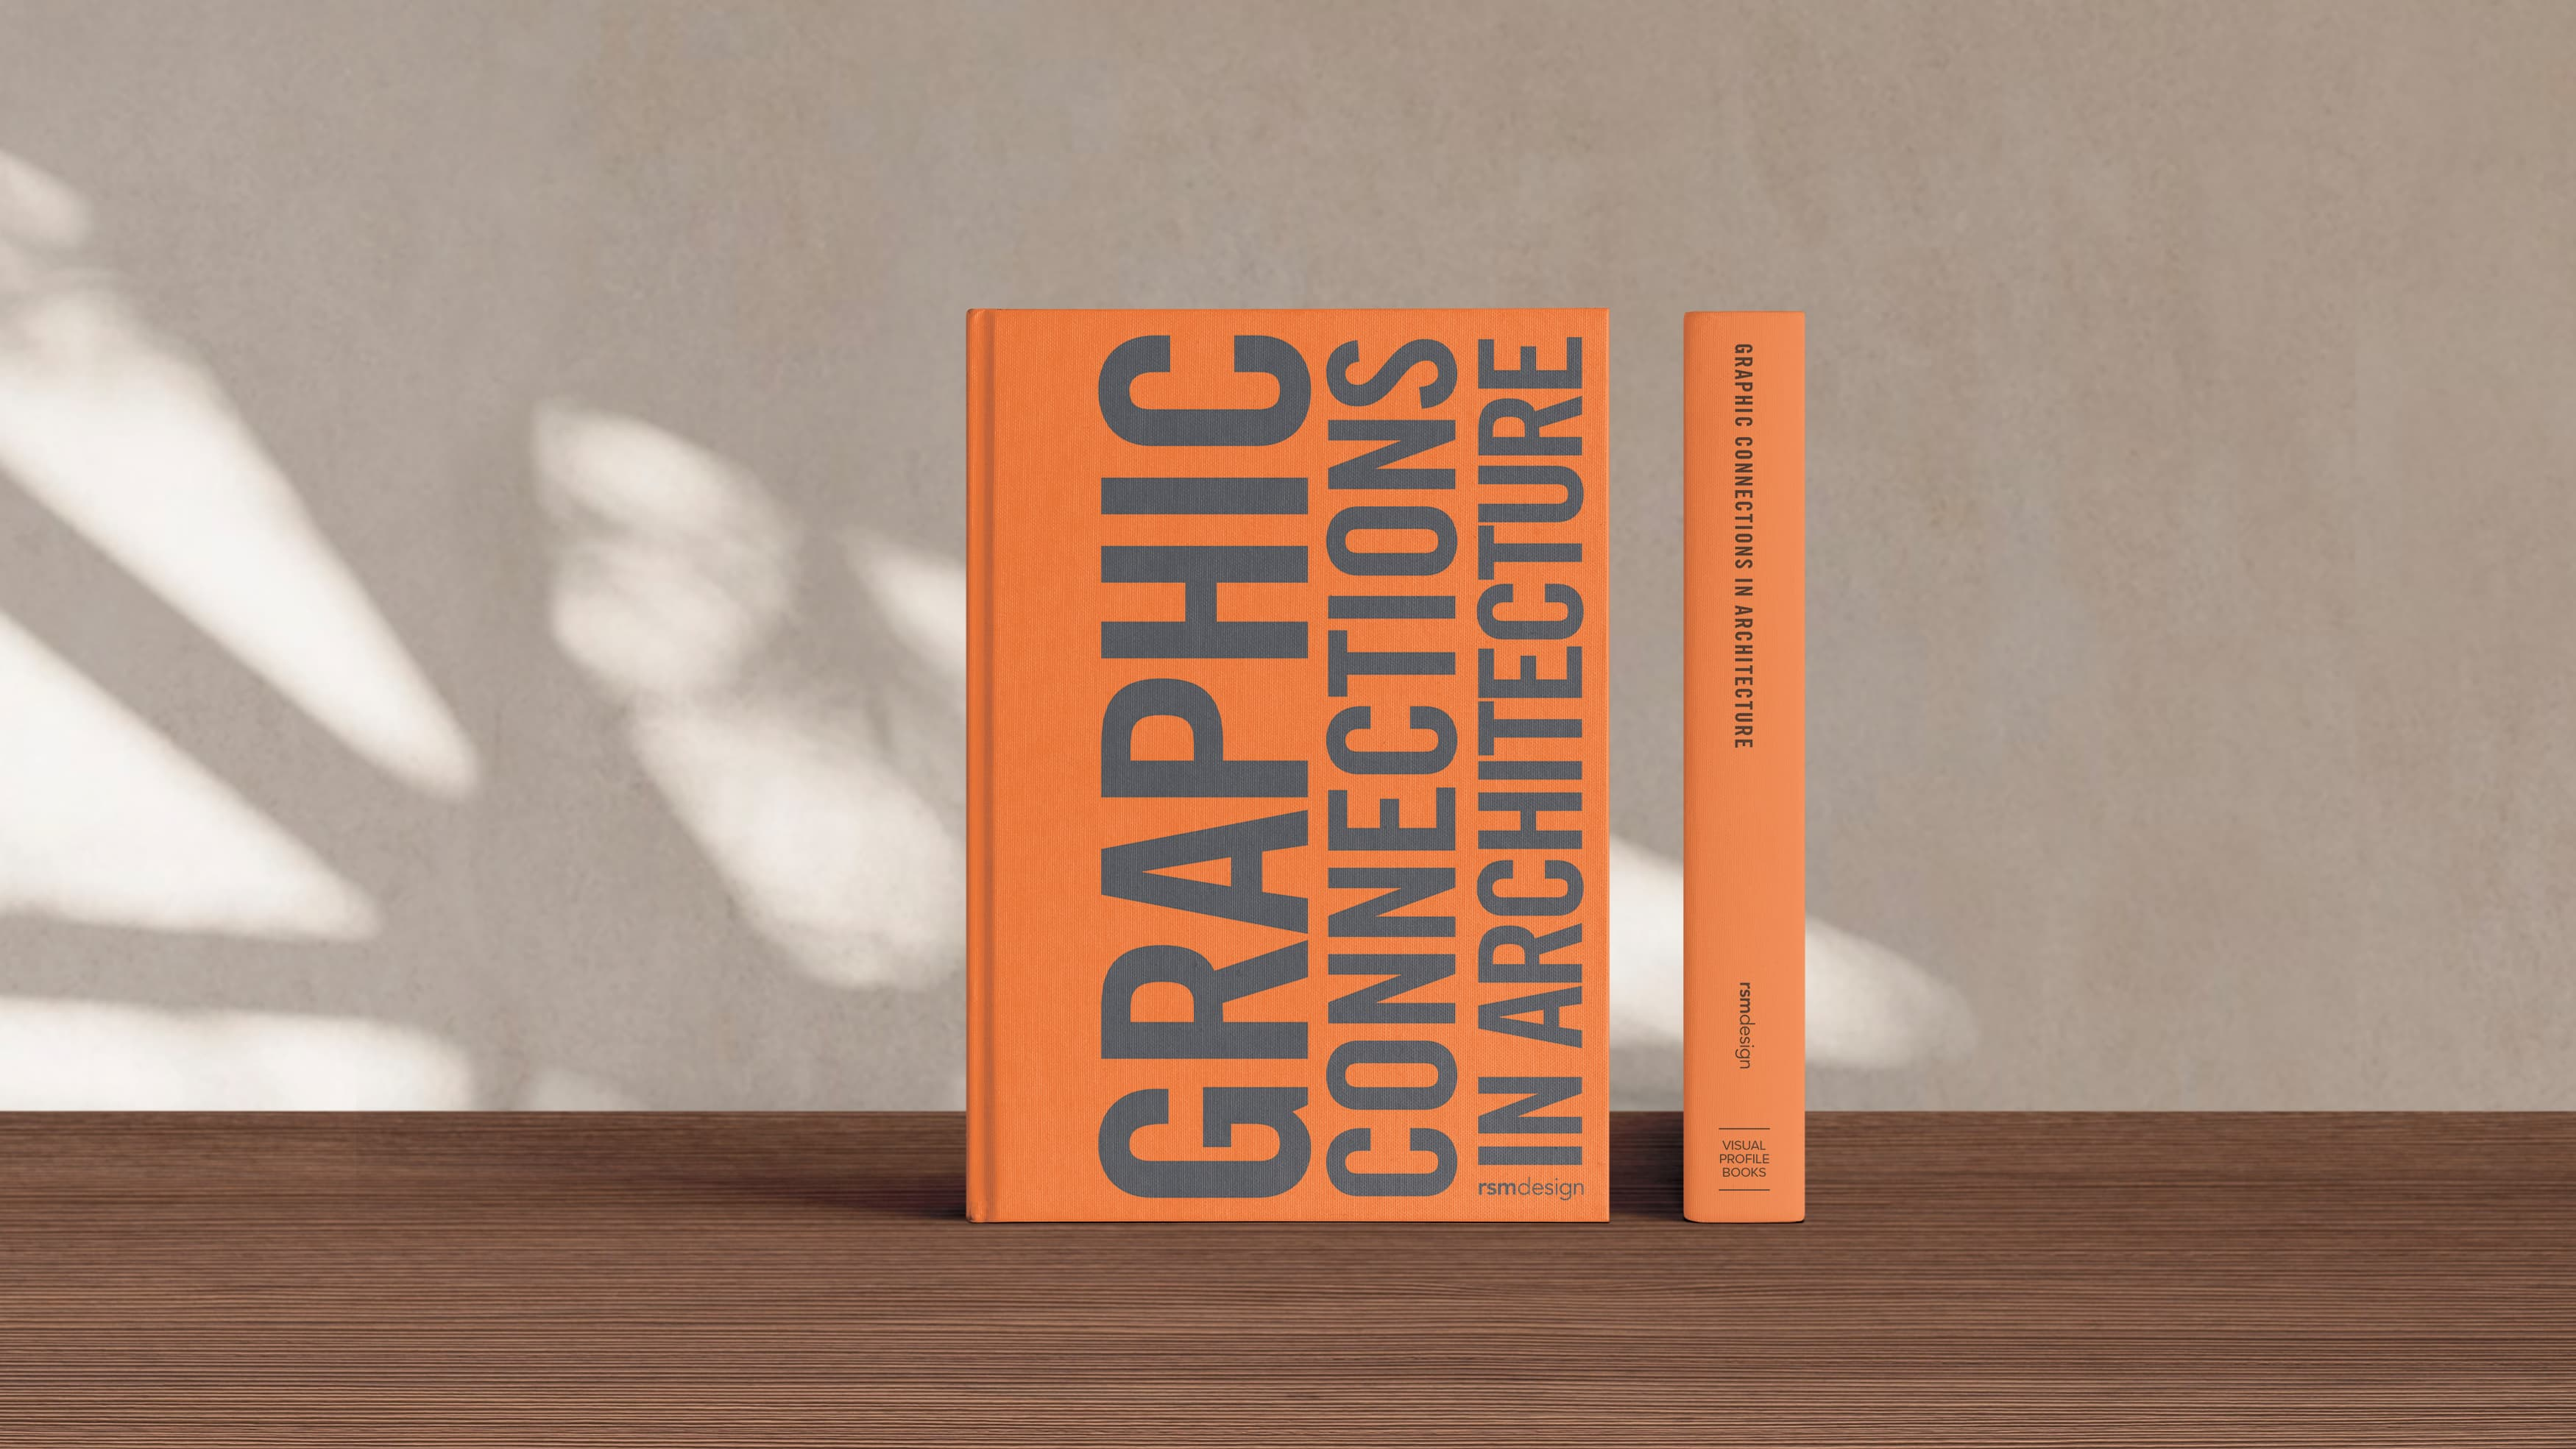 RSM Design's newest book, Graphic Connections in Architecture, sits on a hardwood table.